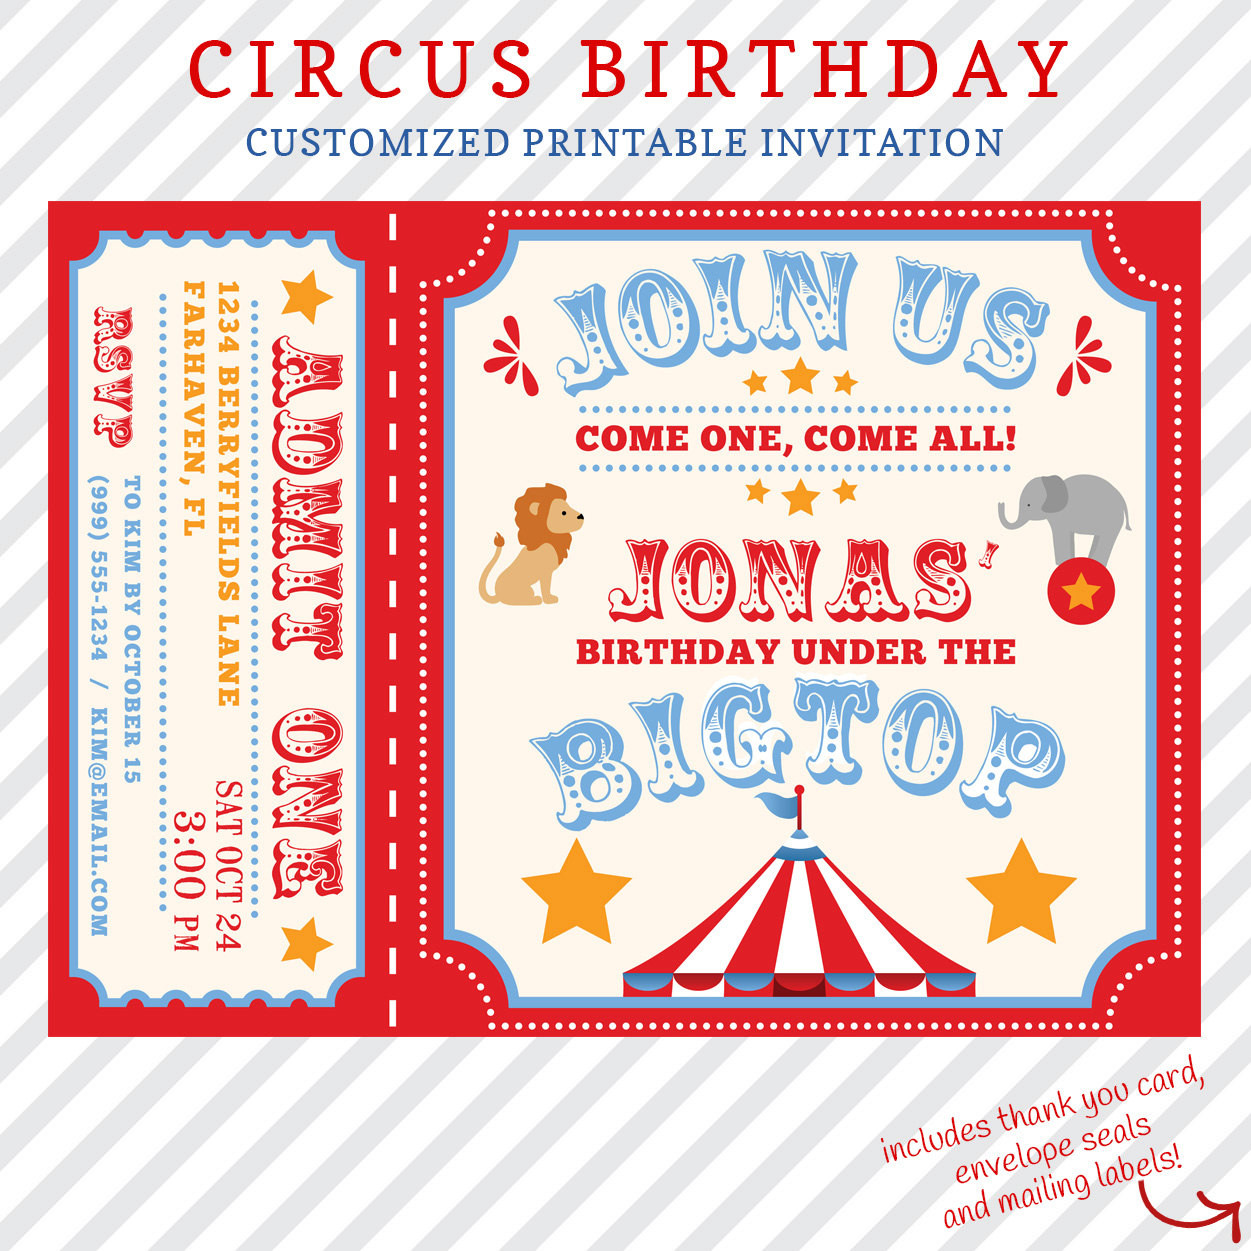 Best ideas about Custom Birthday Party Invitations . Save or Pin Circus Birthday Invitation Printable custom invitation with Now.